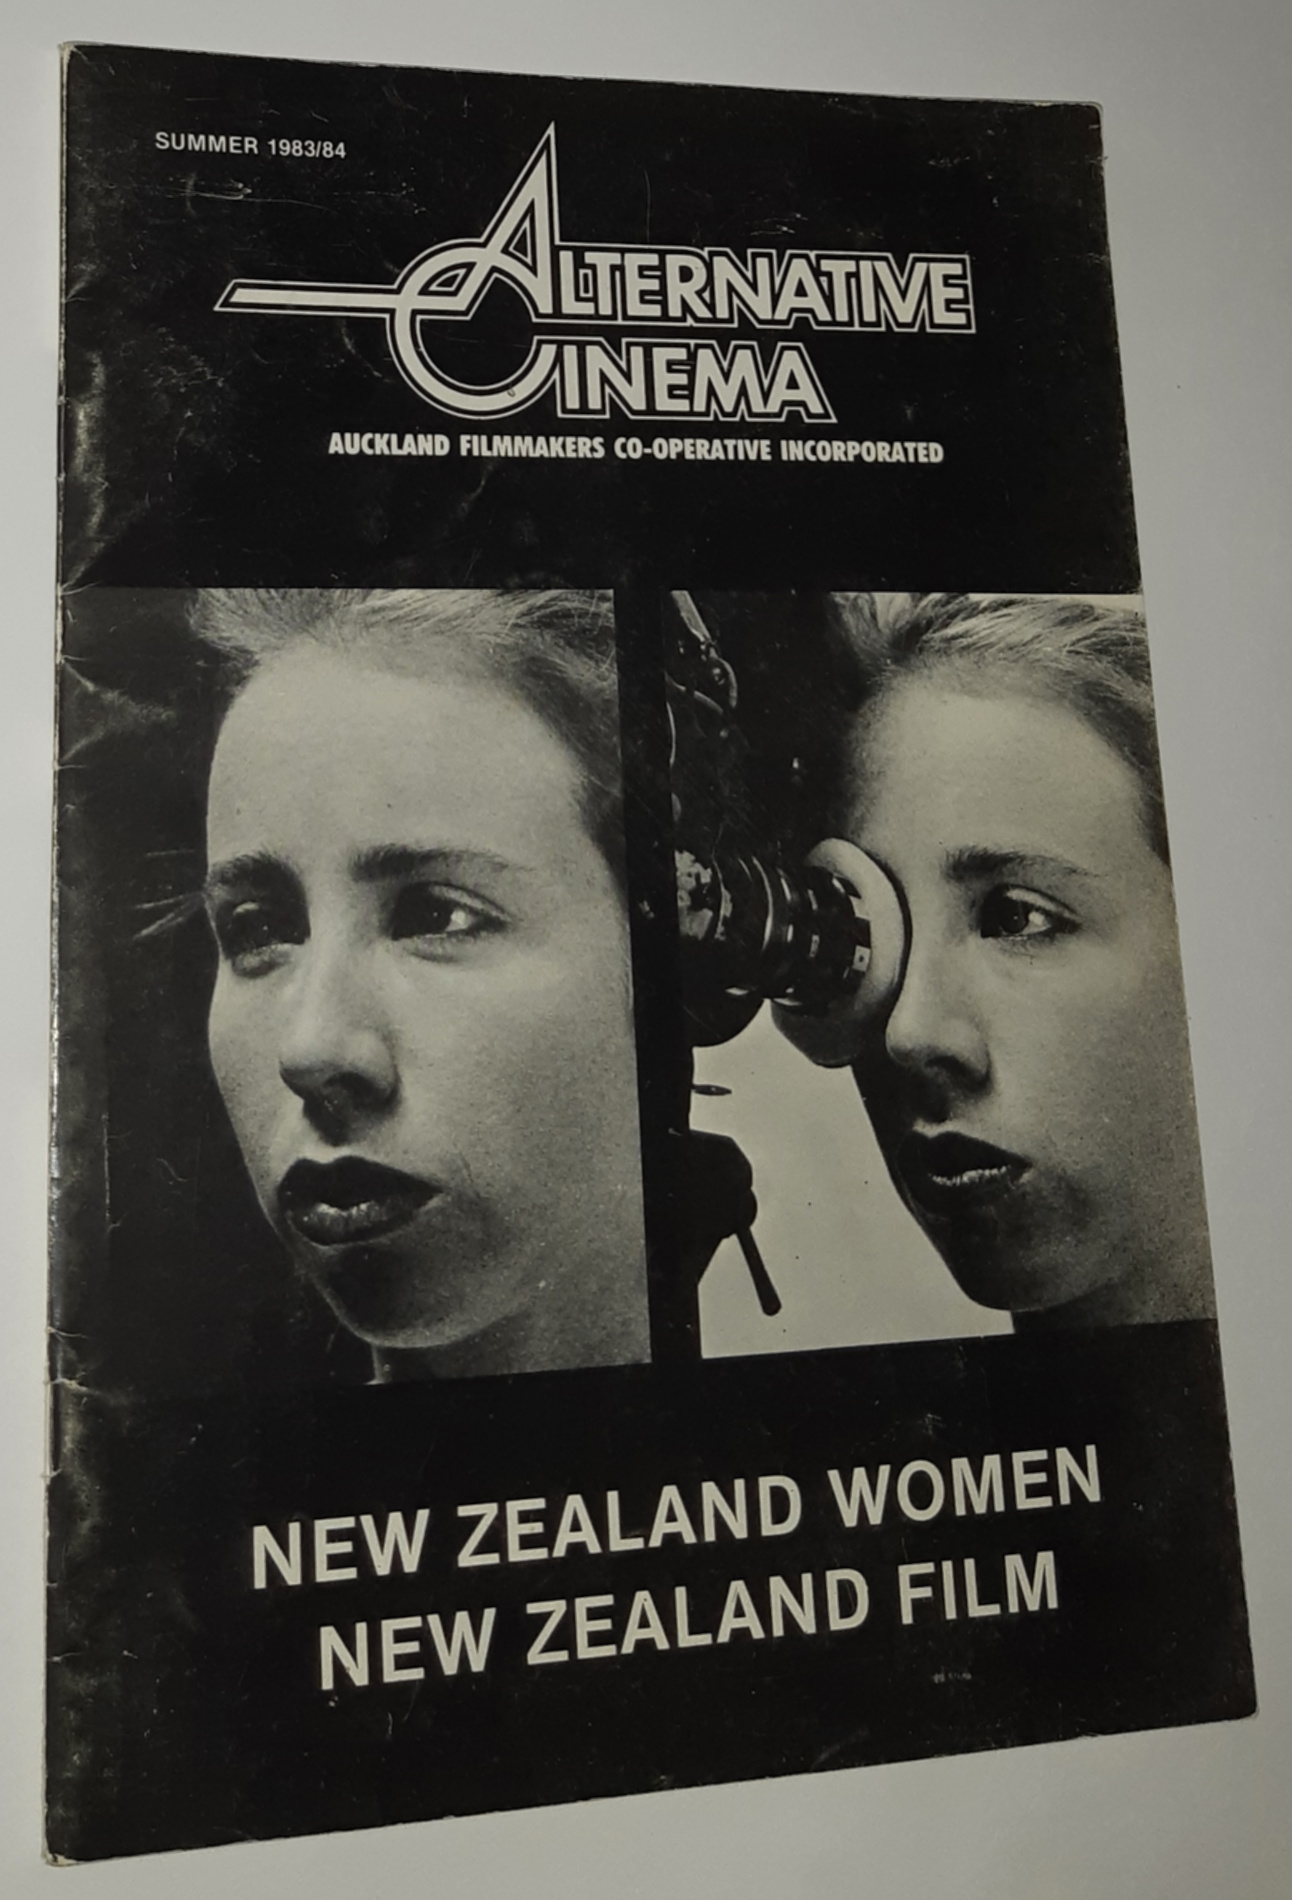 Image for ALTERNATIVE CINEMA. Summer 1983/84. Vol. 11 No. 4.: New Zealand Women. New Zealand Film.